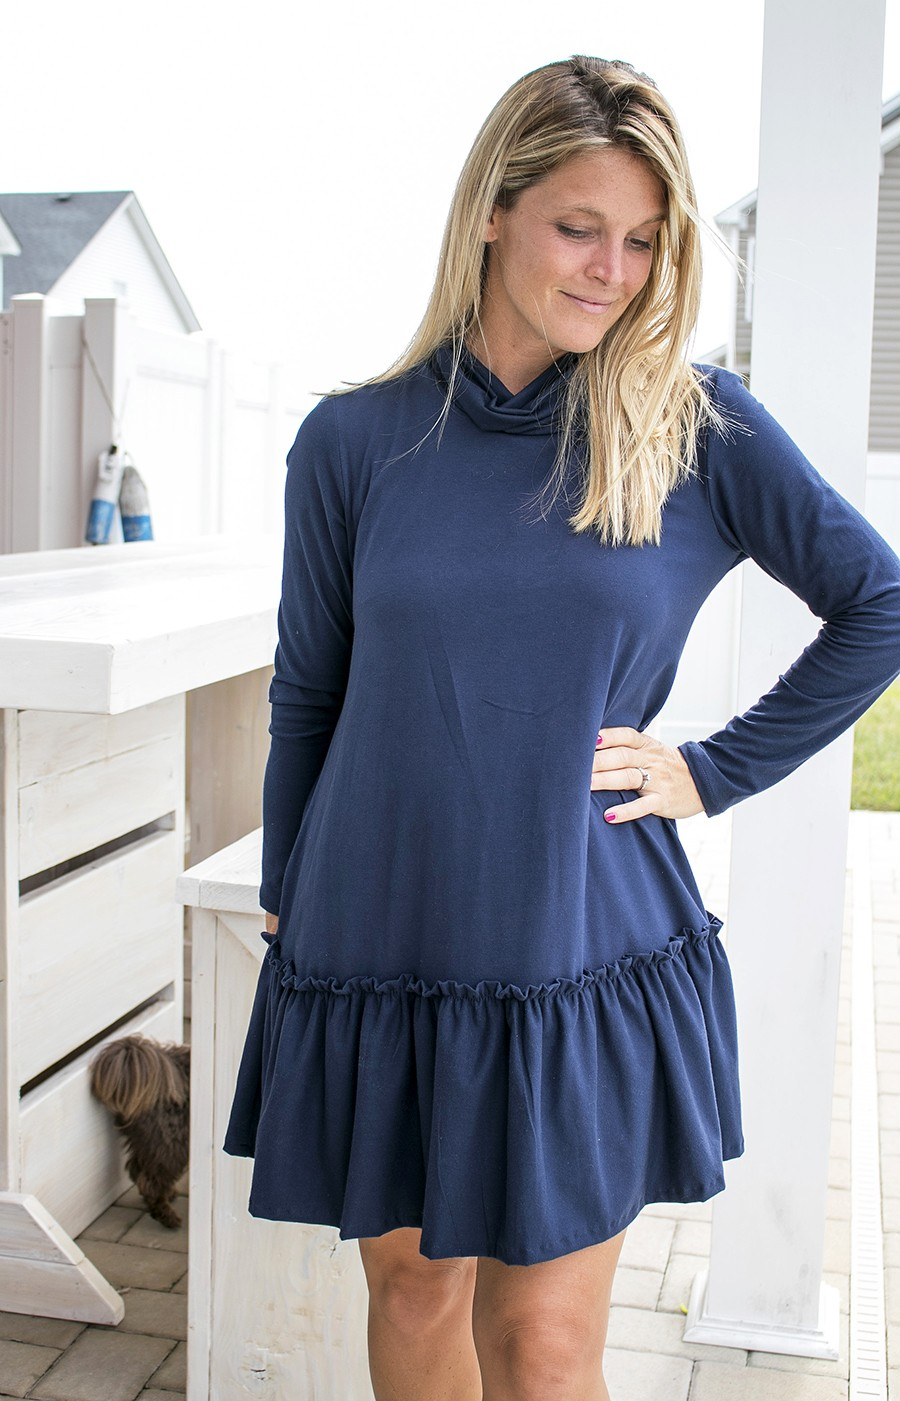 MAKE THIS LOOK: Drop waist knit dress